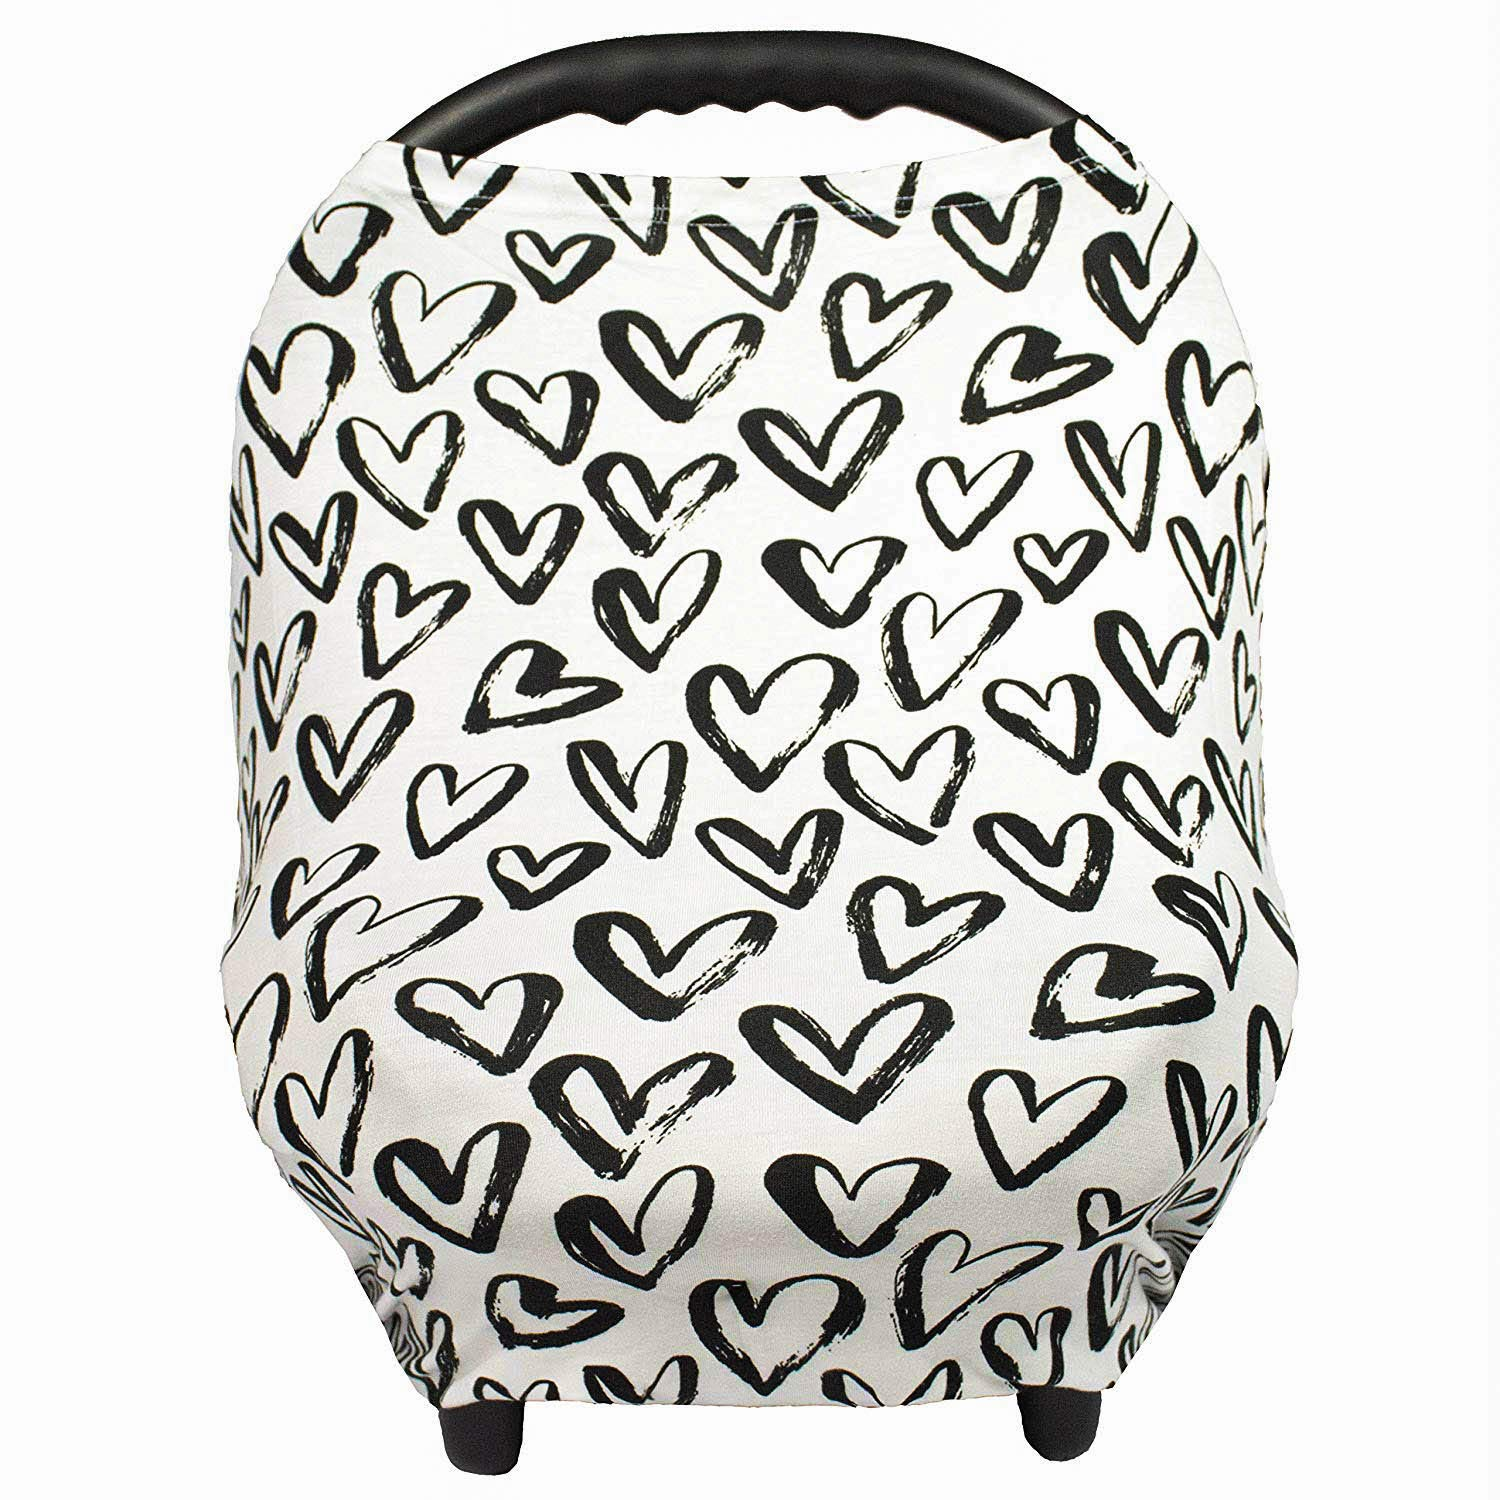 Gufix Infant Dealing full price reduction Car Seat Shipping included Cover The Nursing Sea Stretchy Scarf